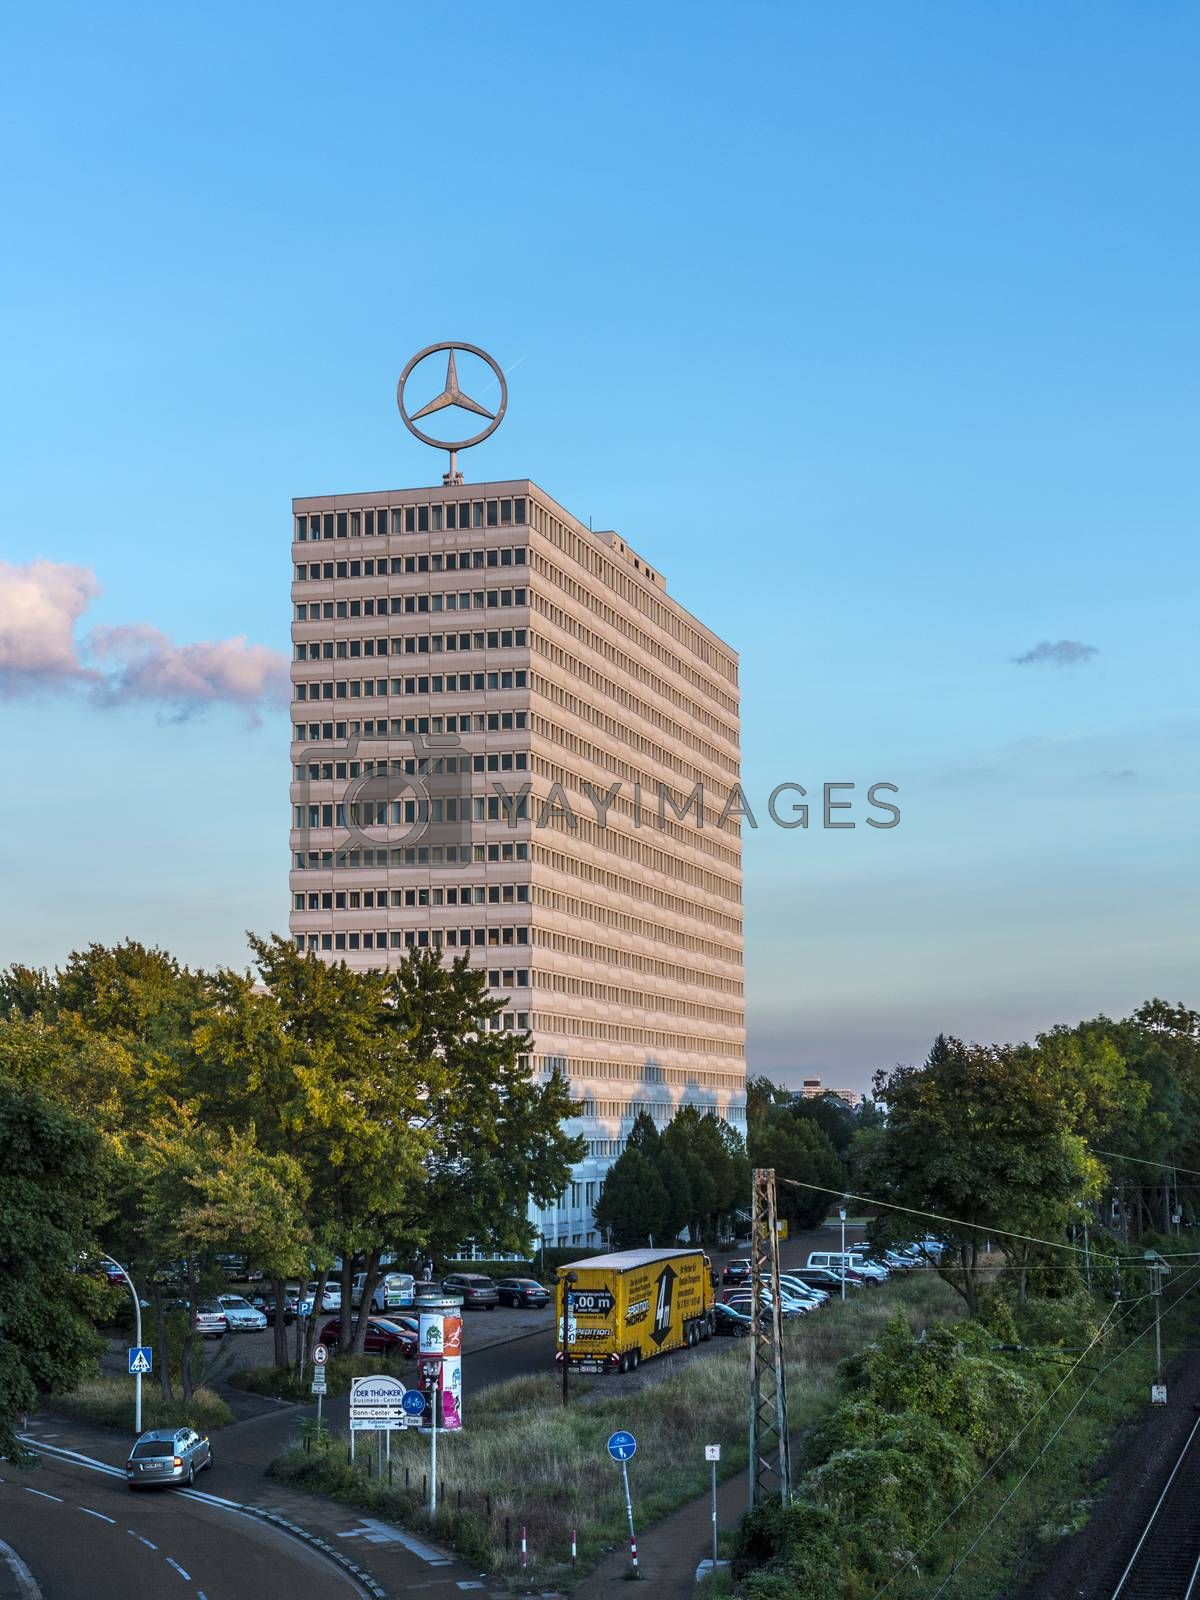 Royalty free image of image of the Mercedes Benz logo on the rooftop of a high rise bu by meinzahn